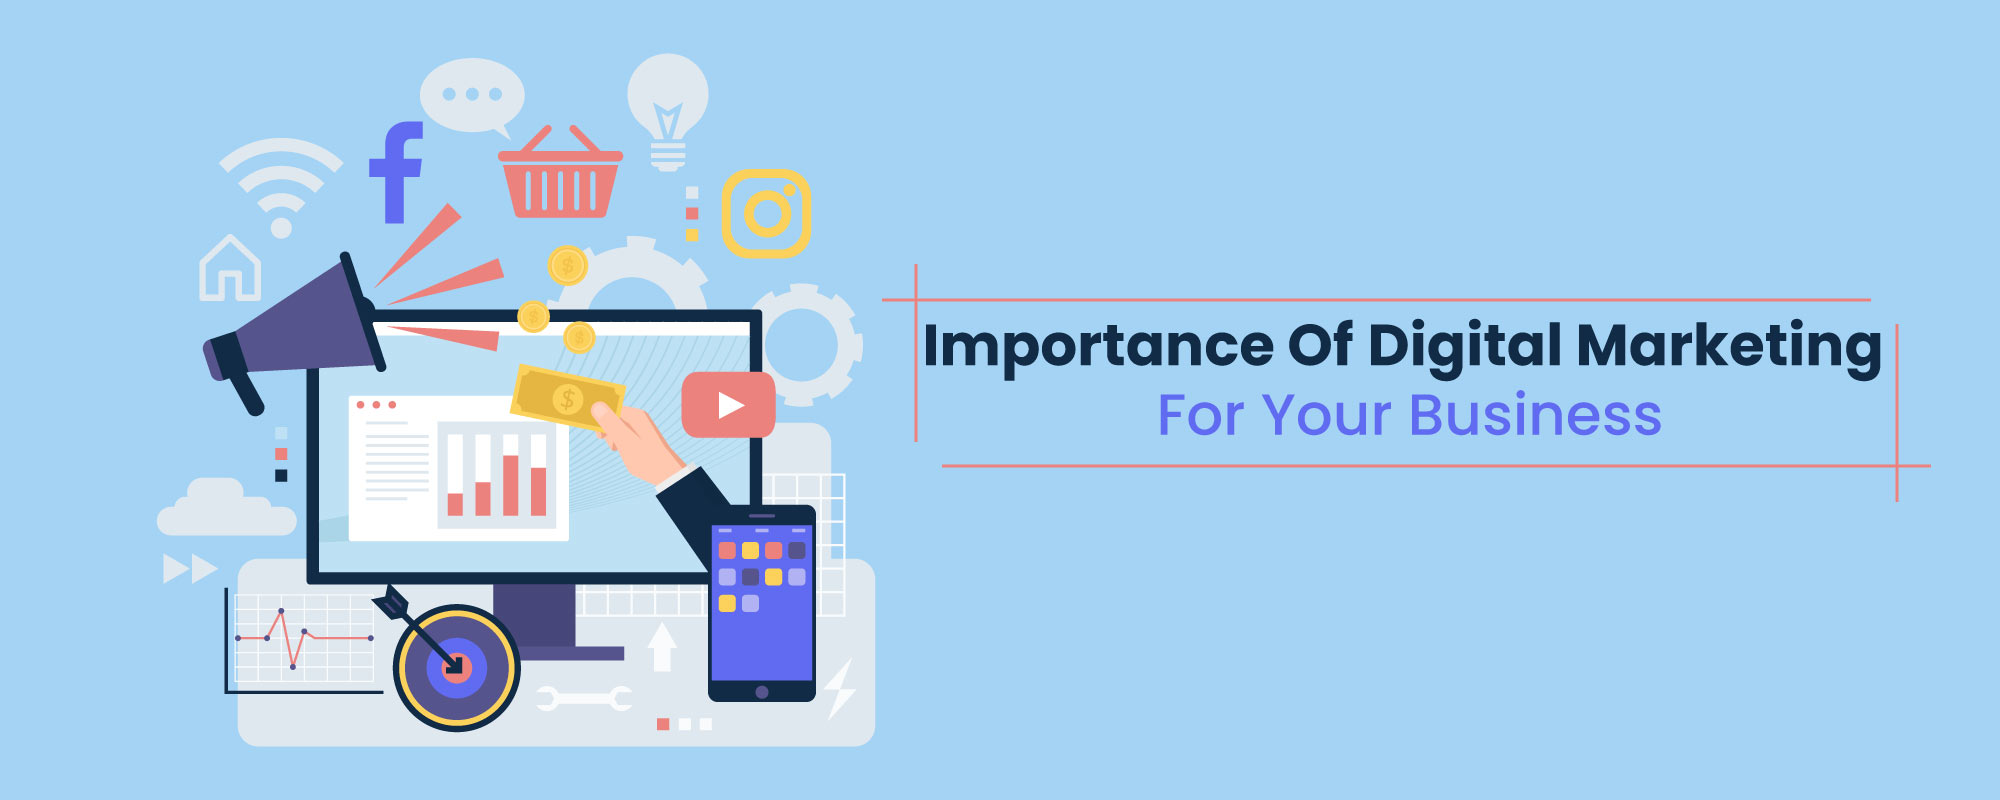 Importance of digital for business